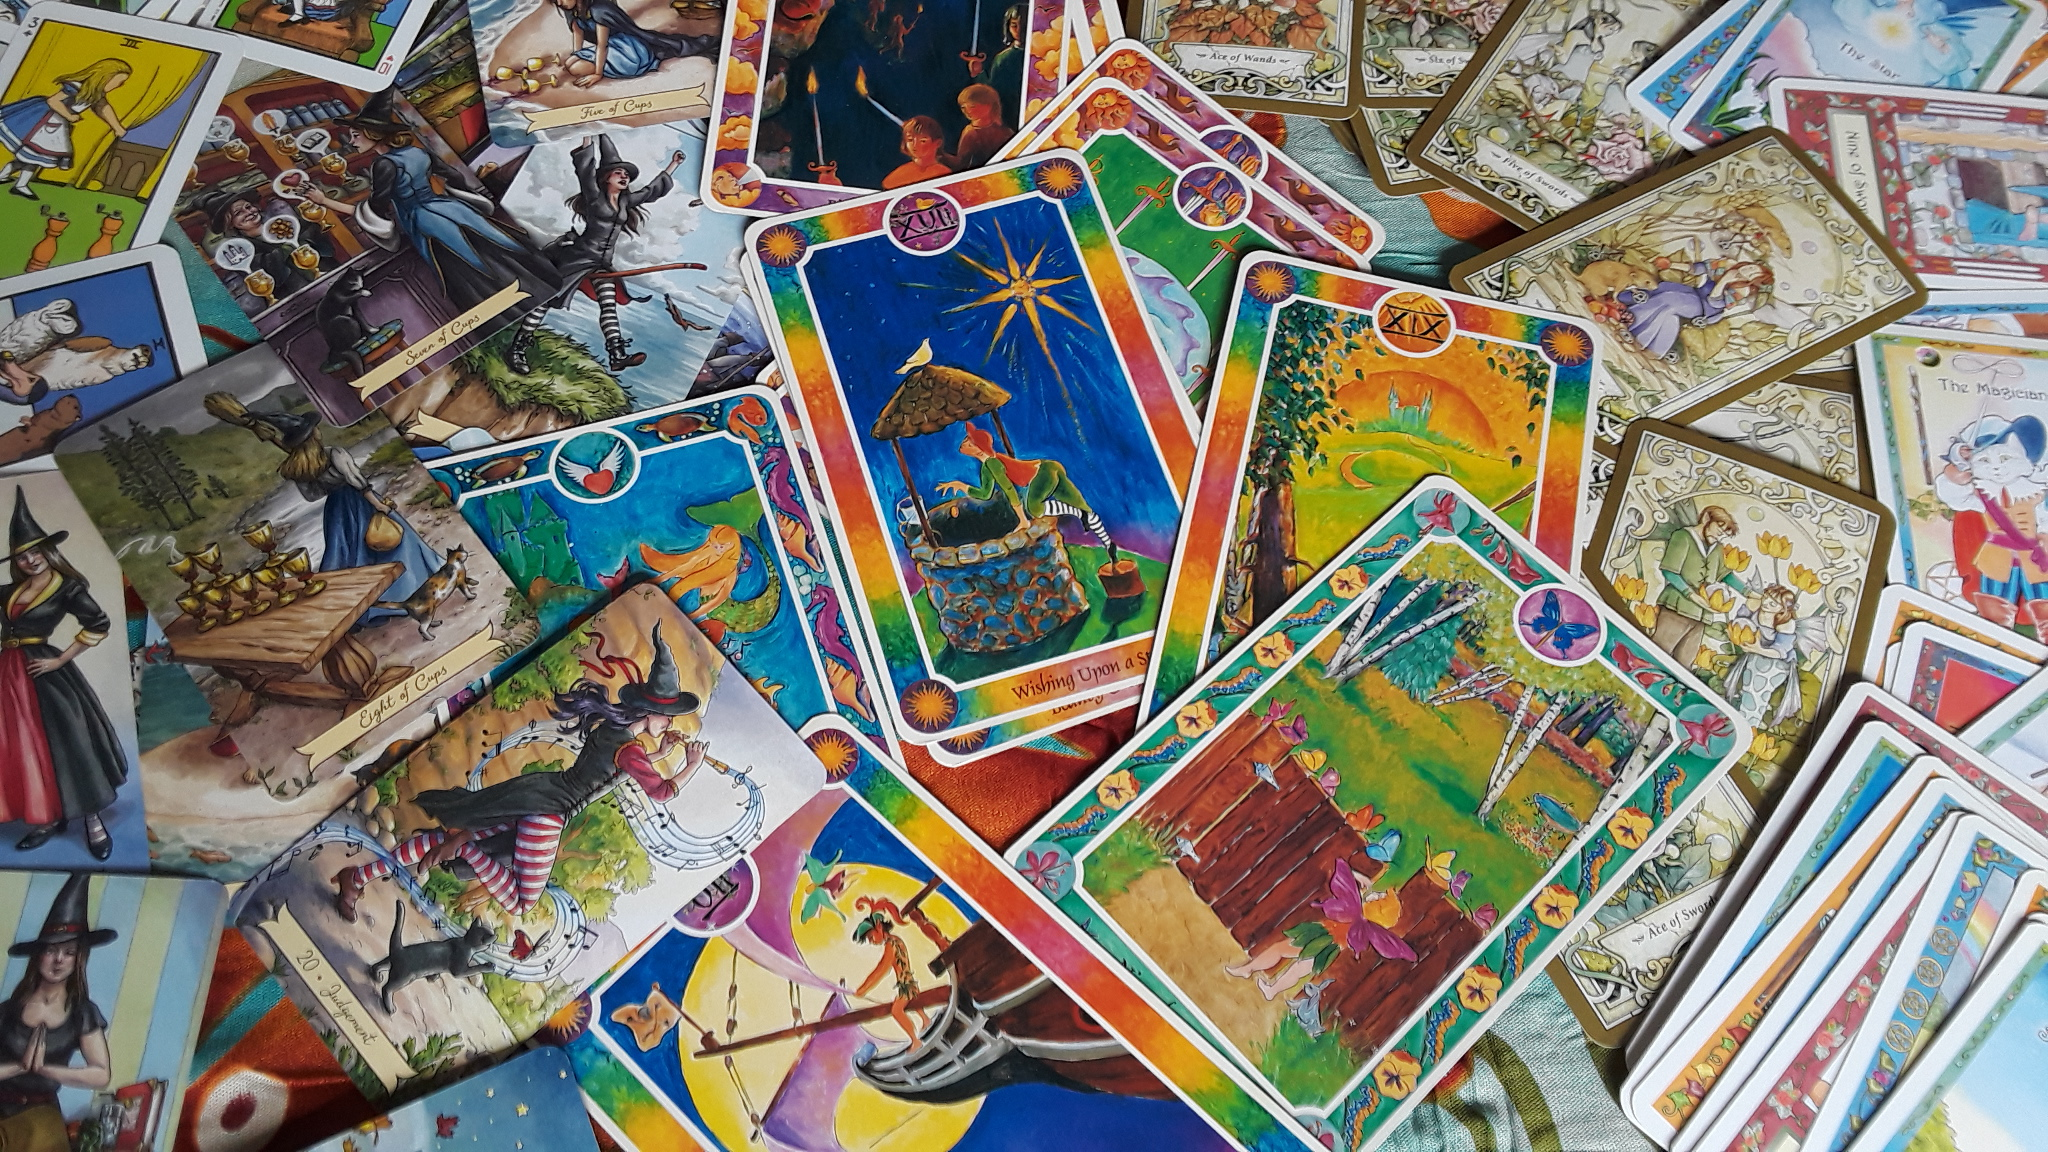 Five colorful kids decks perfect for reading tarot for kids.